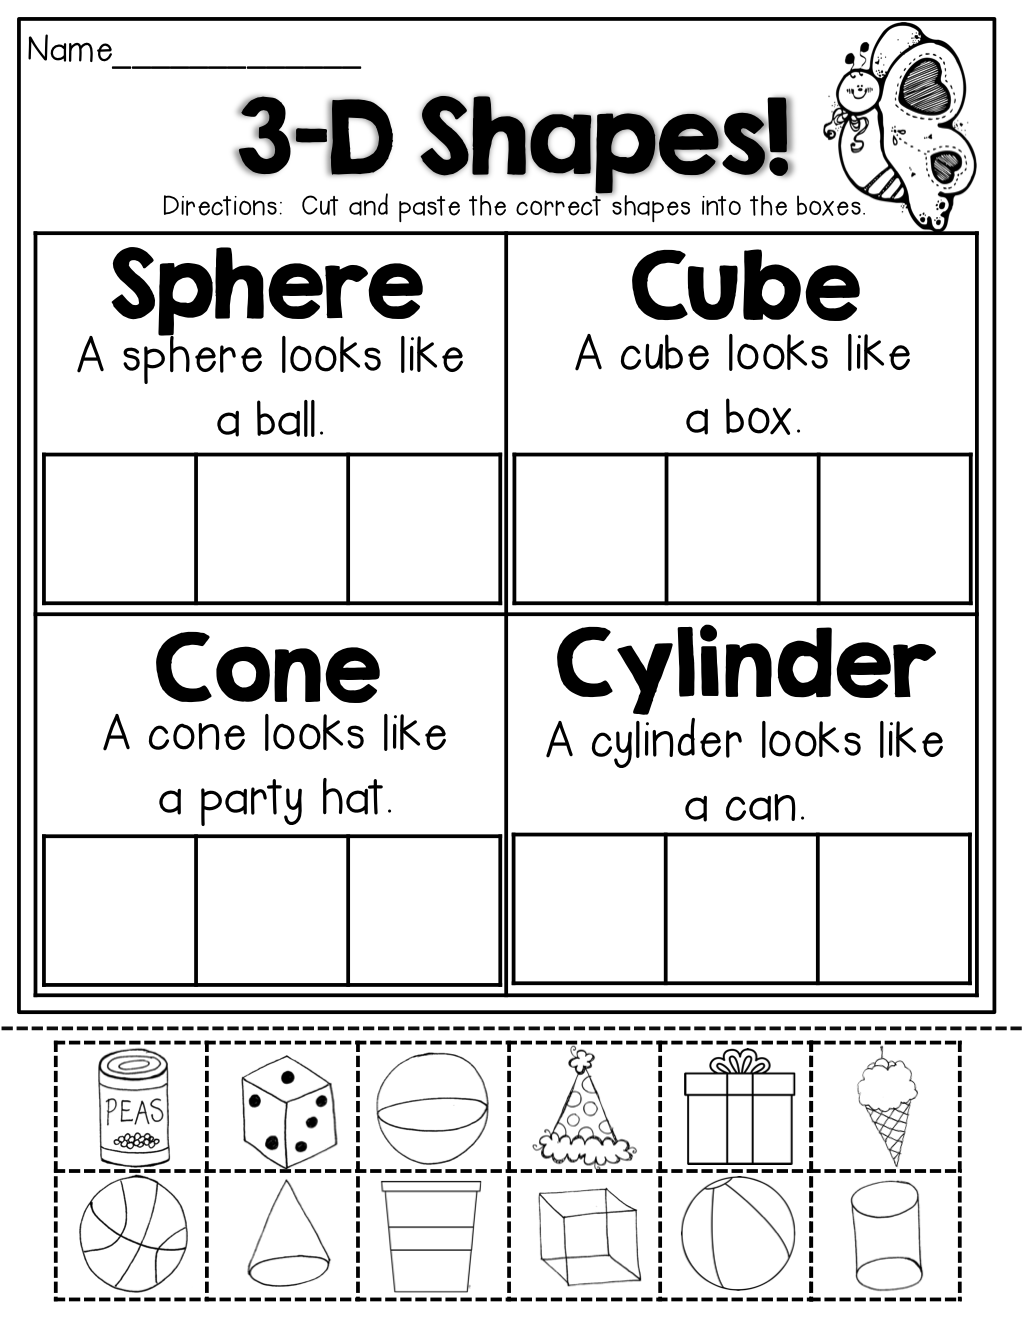 Uncategorized 3d Shapes Worksheets 3 d shapes tons of great printables that hit core skills skills